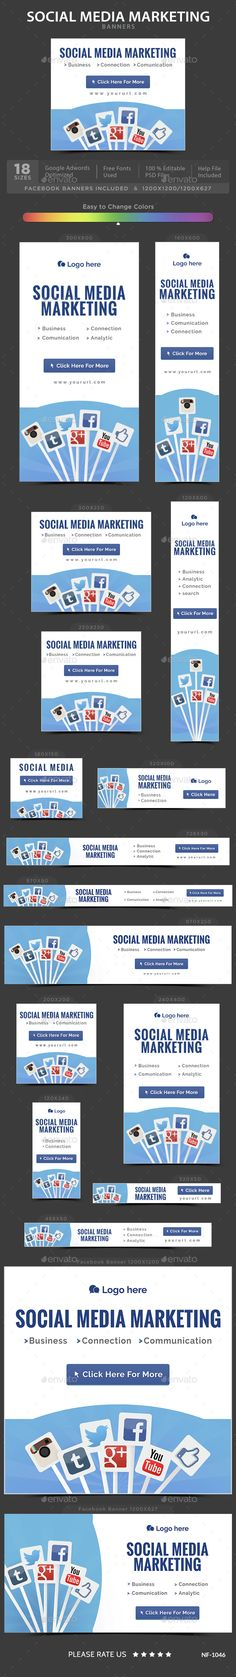 Social Media Web Banners Template PSD. Download here: http://graphicriver.net/item/social-media-banners/14830517?ref=ksioks